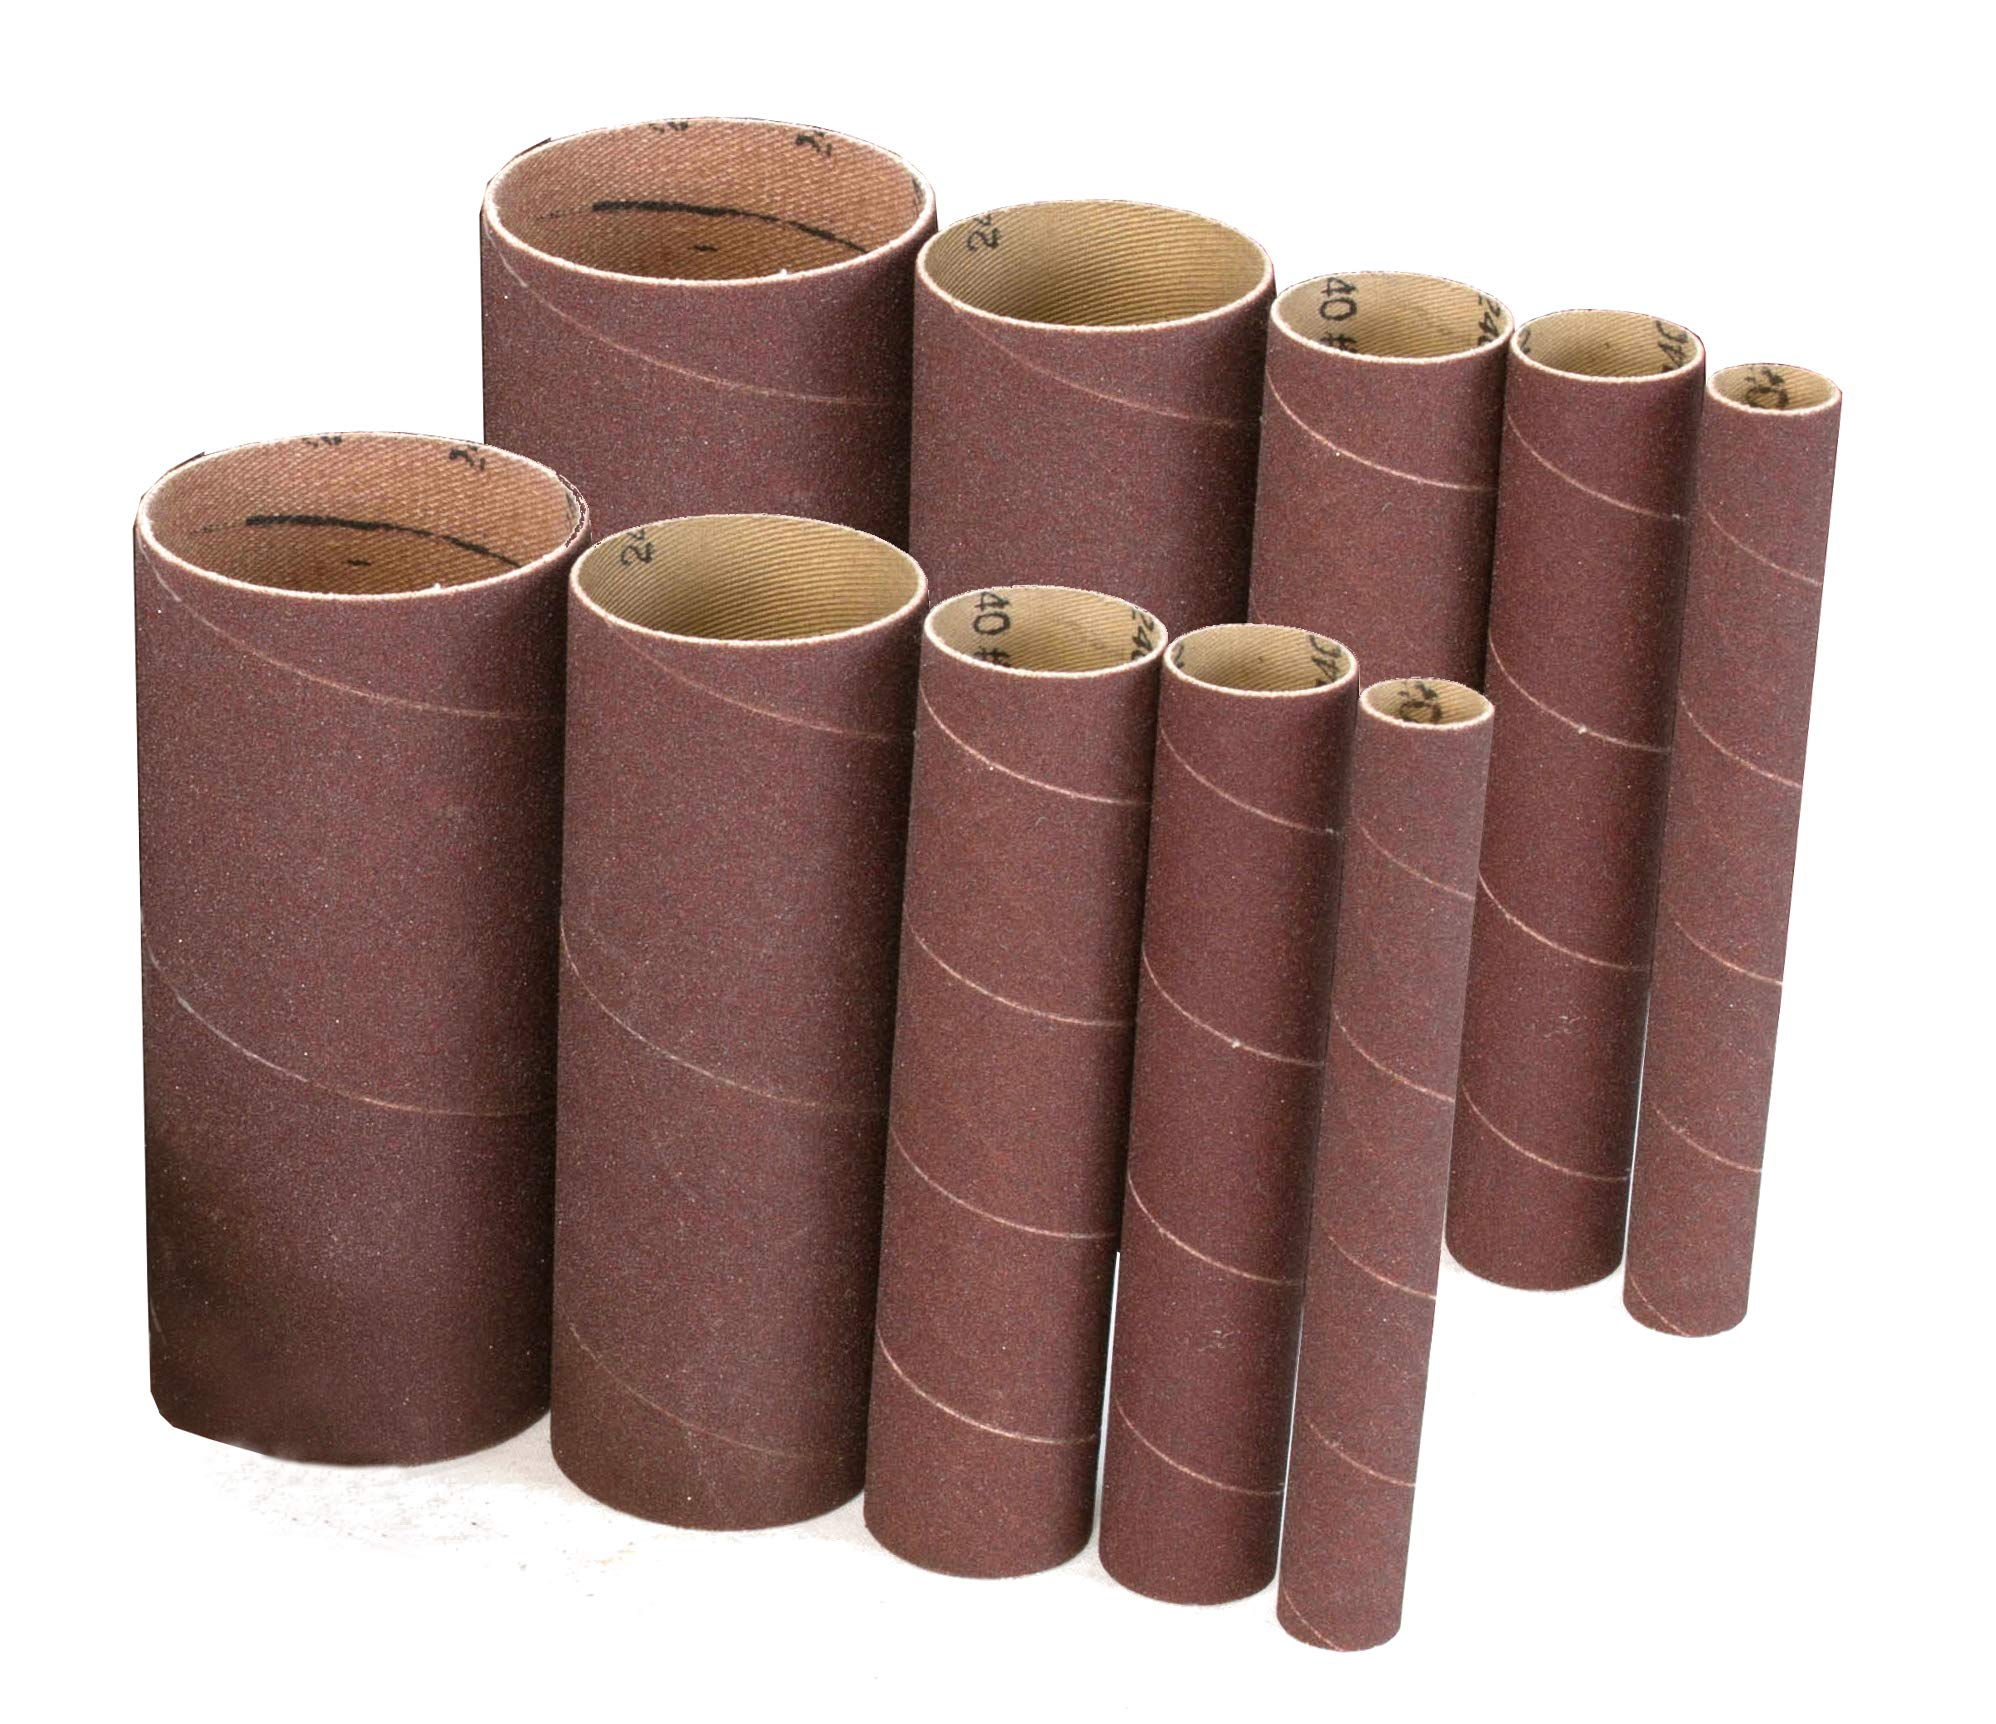 WEN 6535SP240 240-Grit Oscillating Spindle Sandpaper Sanding Sleeves with 5-5/8-Inch Height, 10 Pack